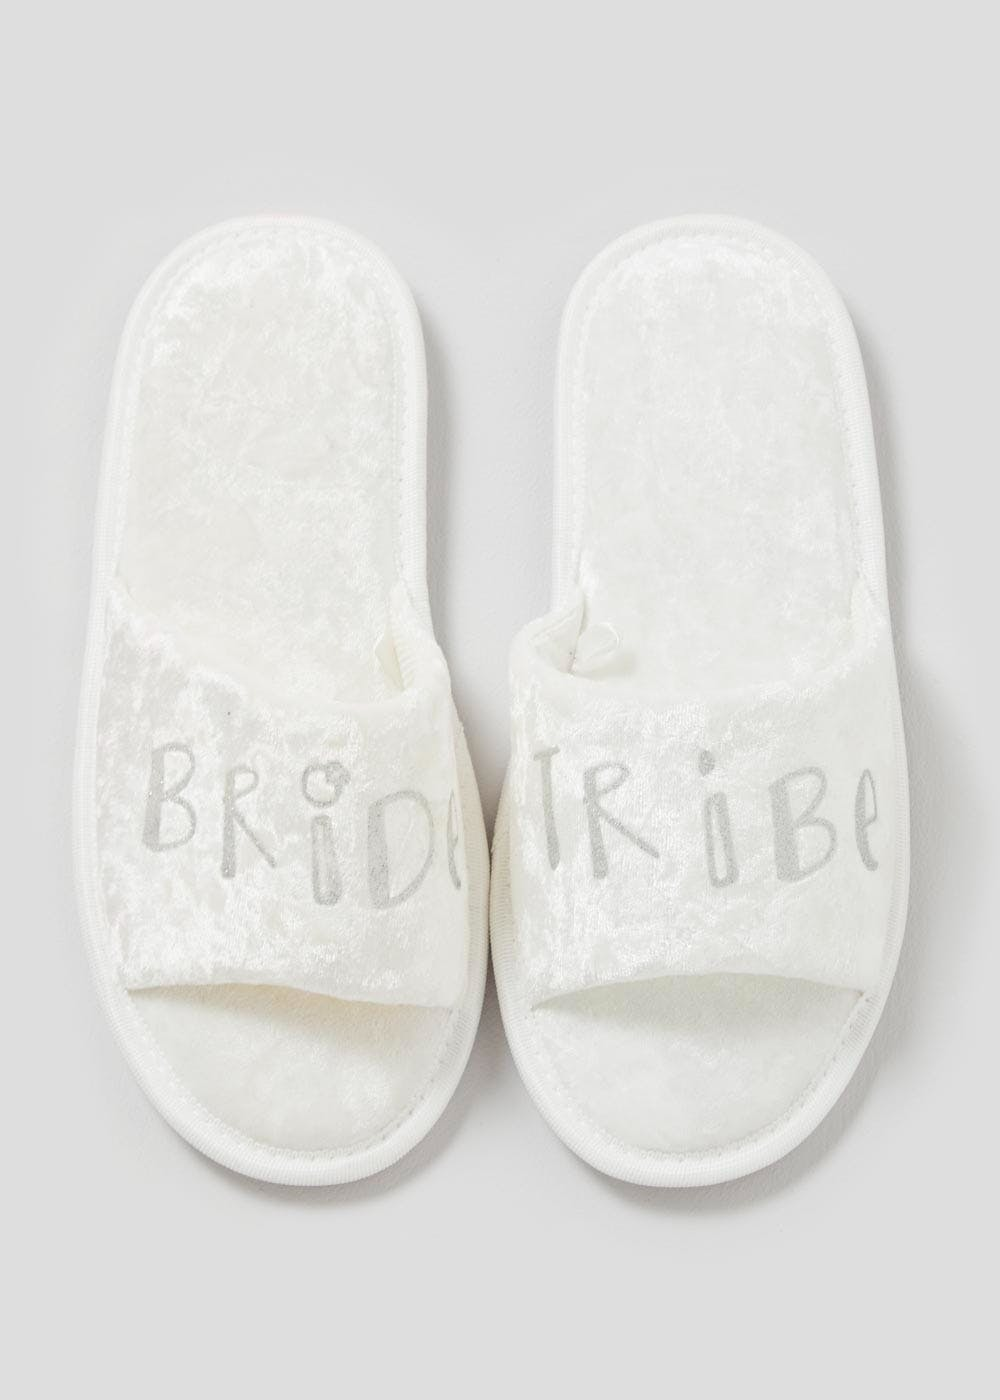 18e8861d3c13 Bride Tribe Velour Slider Slippers – White – Matalan